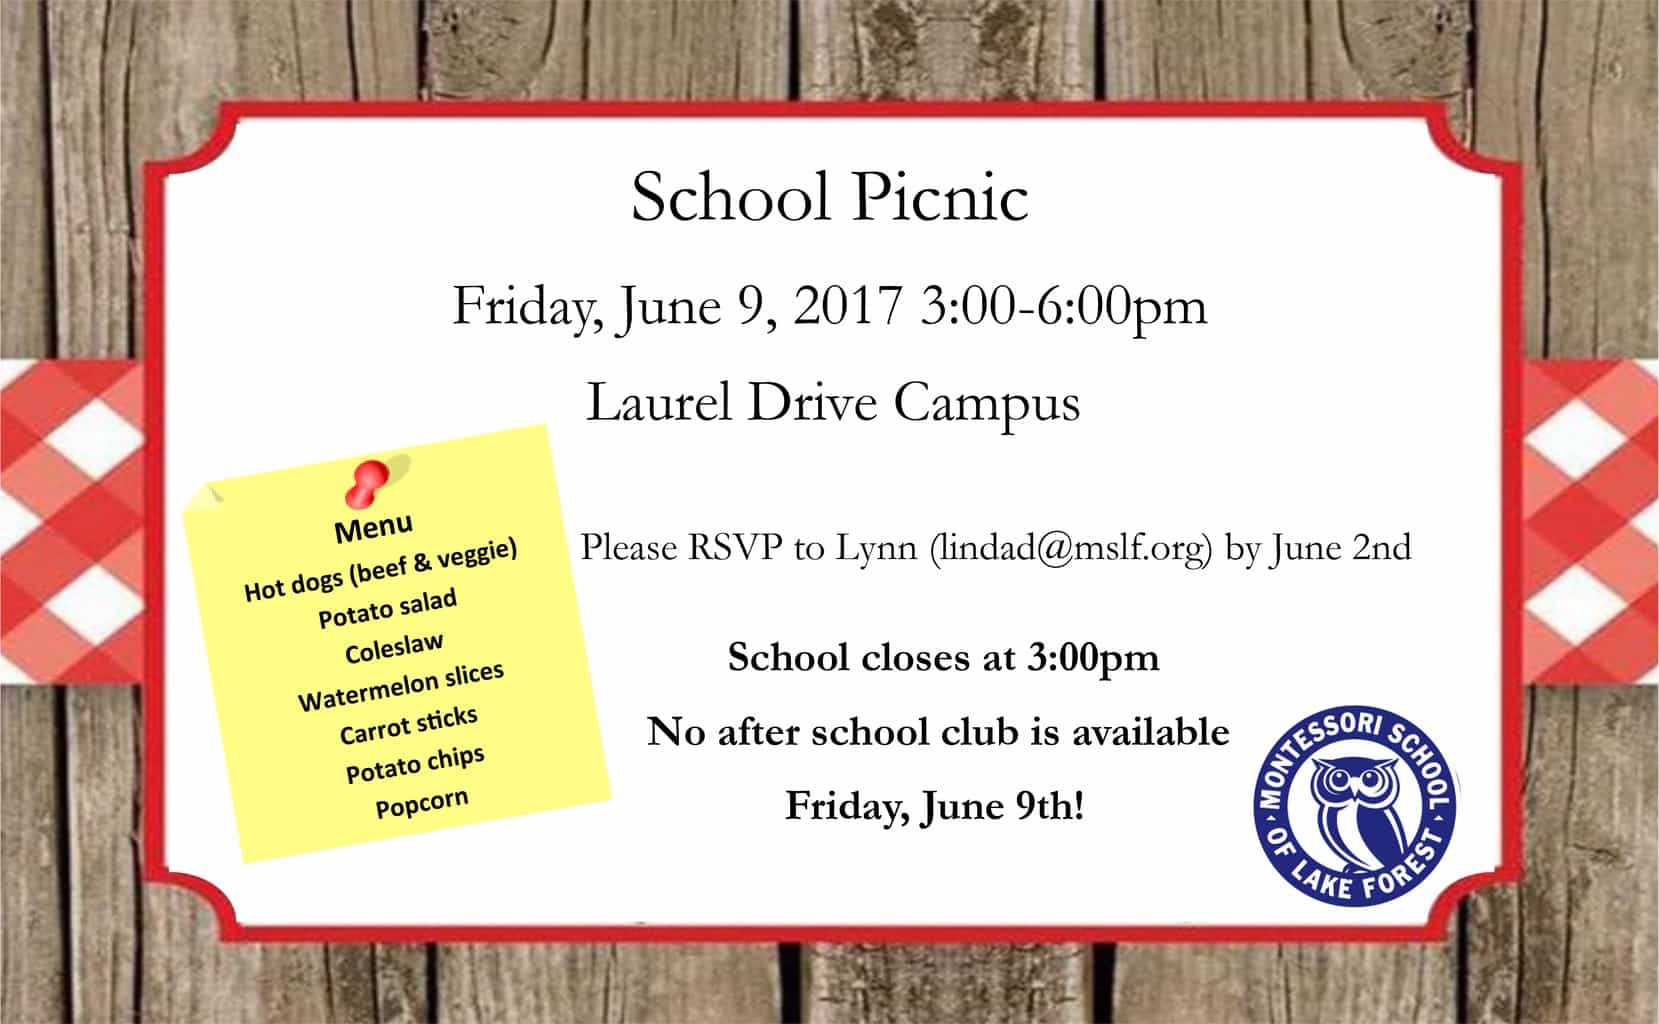 School Picnic @ Laurel Drive Campus | Lake Forest | Illinois | United States